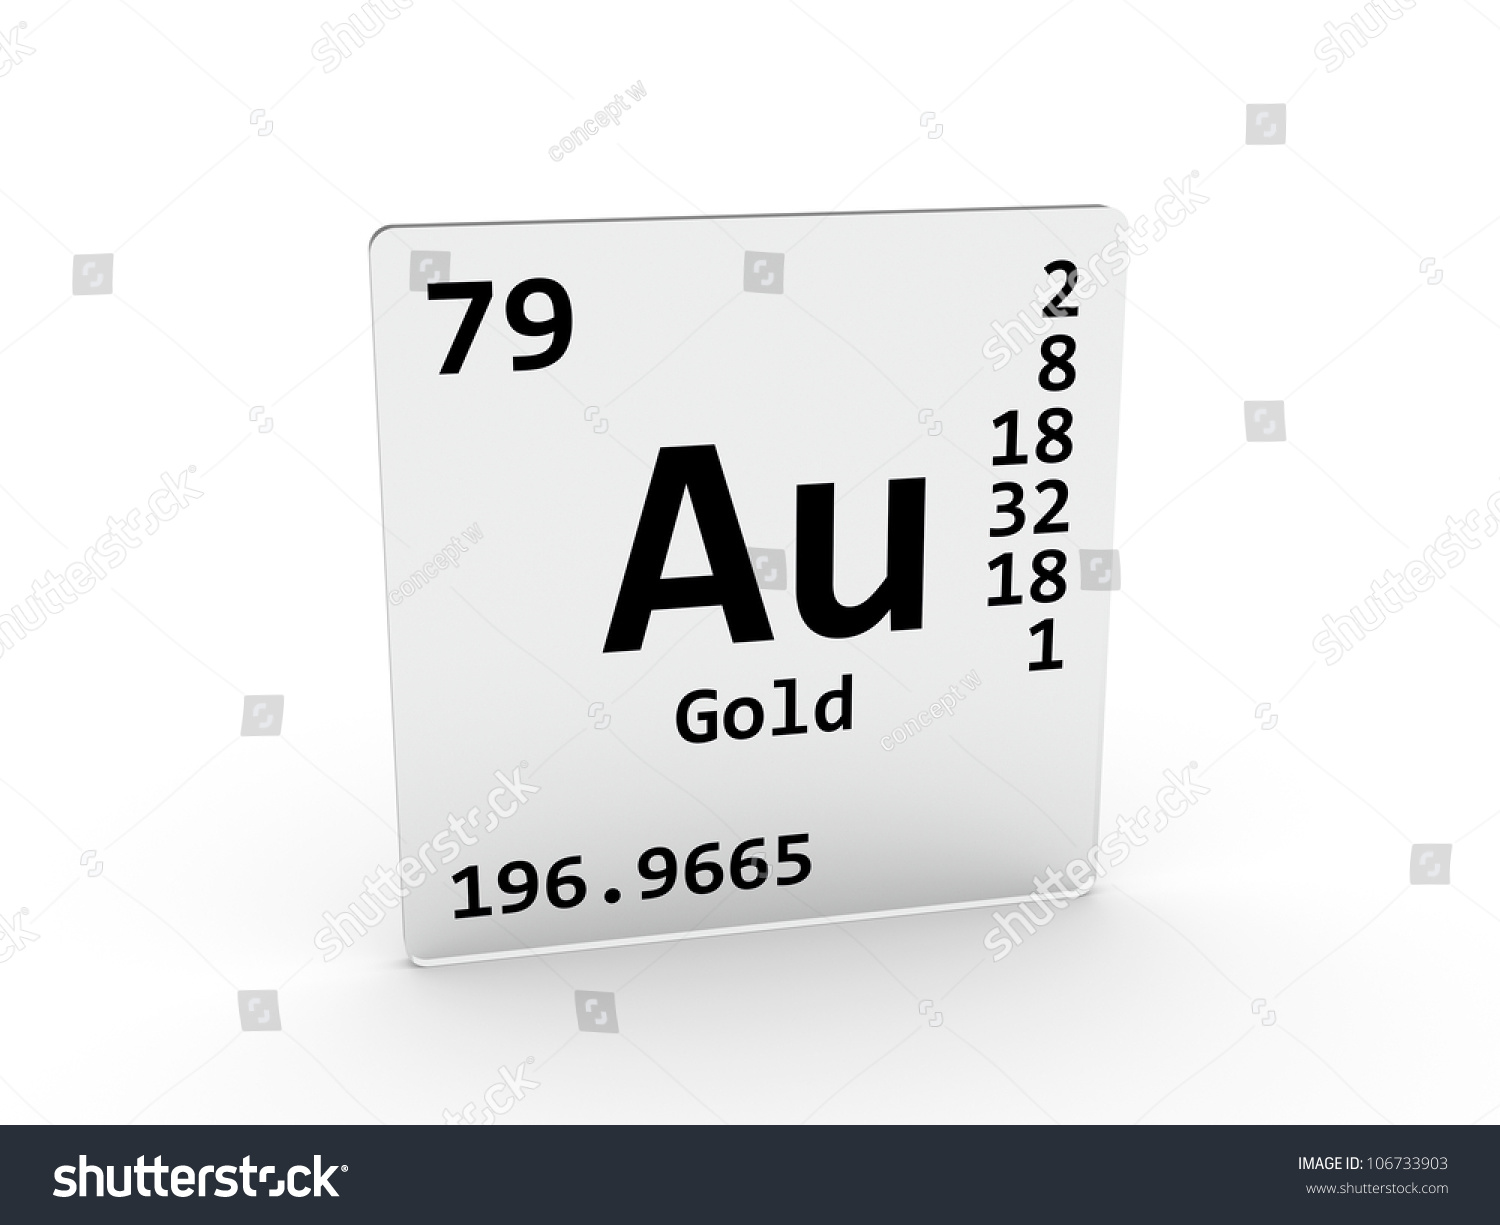 Gold symbol au element periodic table stock illustration 106733903 gold symbol au element of the periodic table urtaz